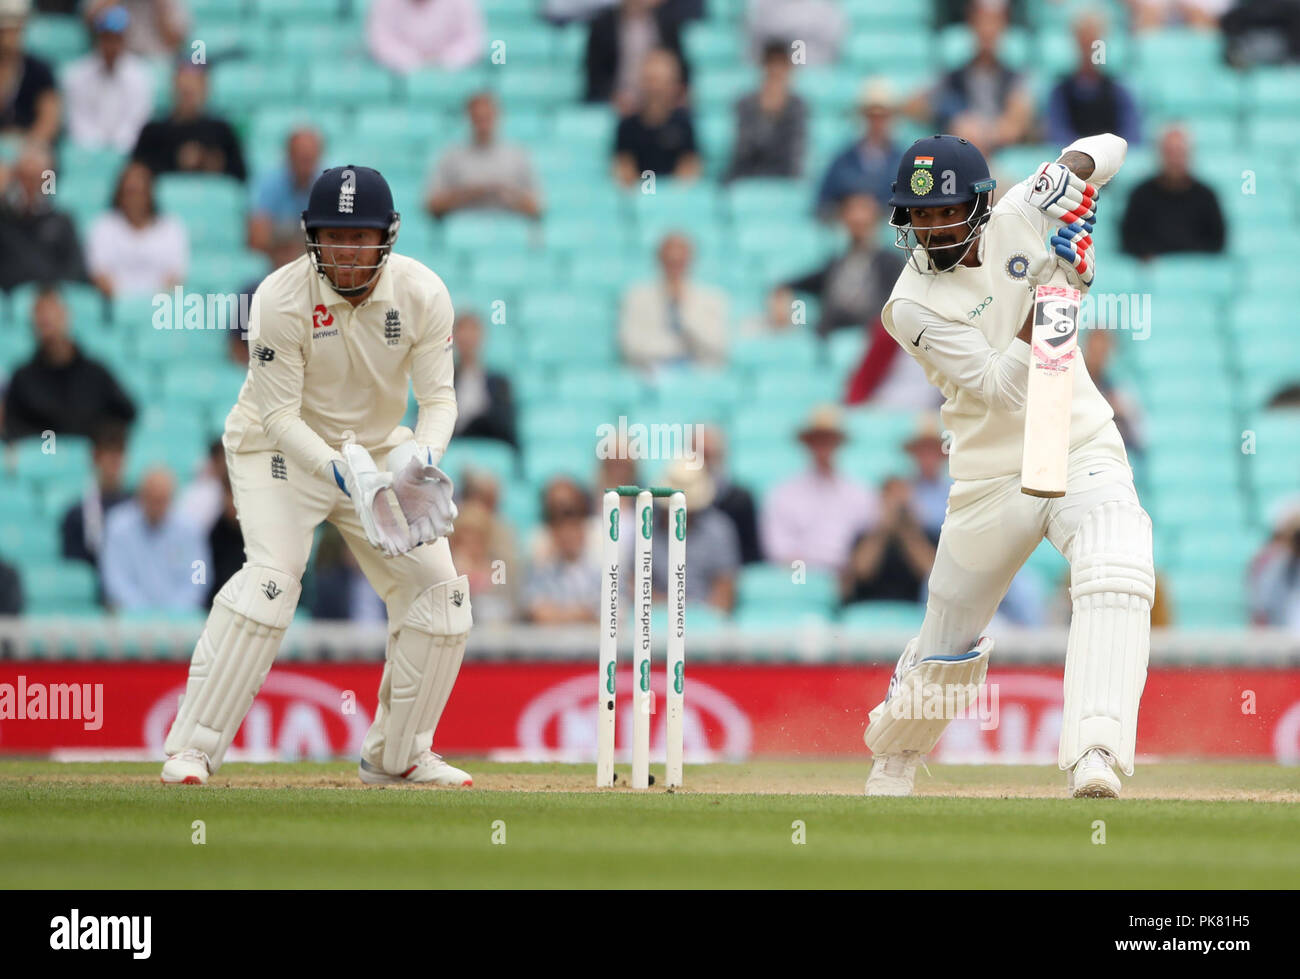 India's KL Rahul (right) hits out for a boundary during the test match at The Kia Oval, London. - Stock Image